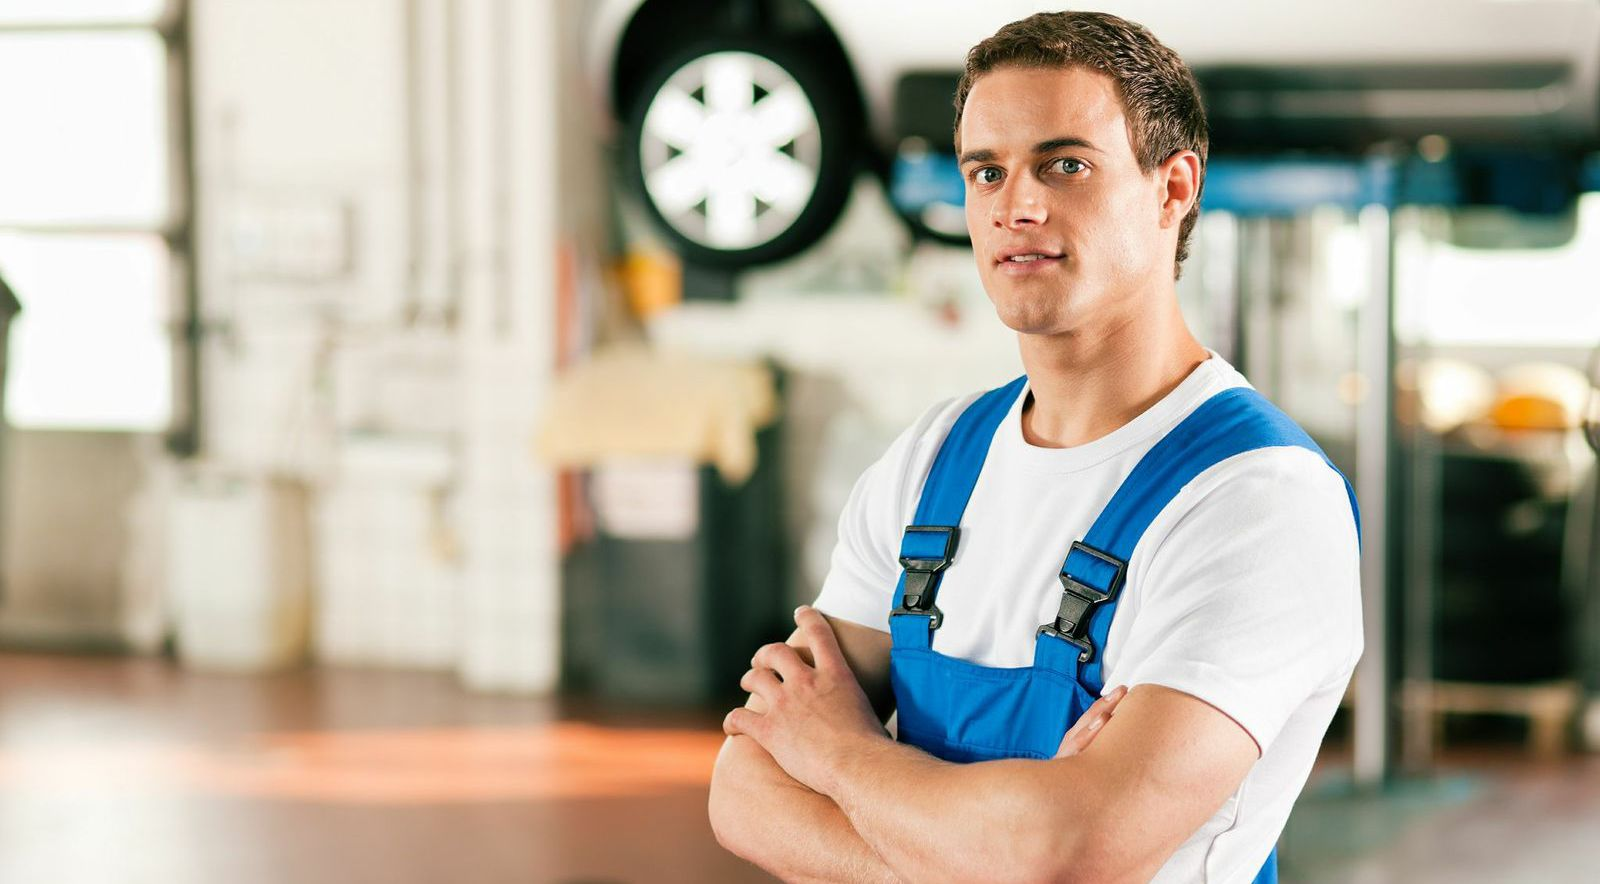 Our mechanic ready to help you